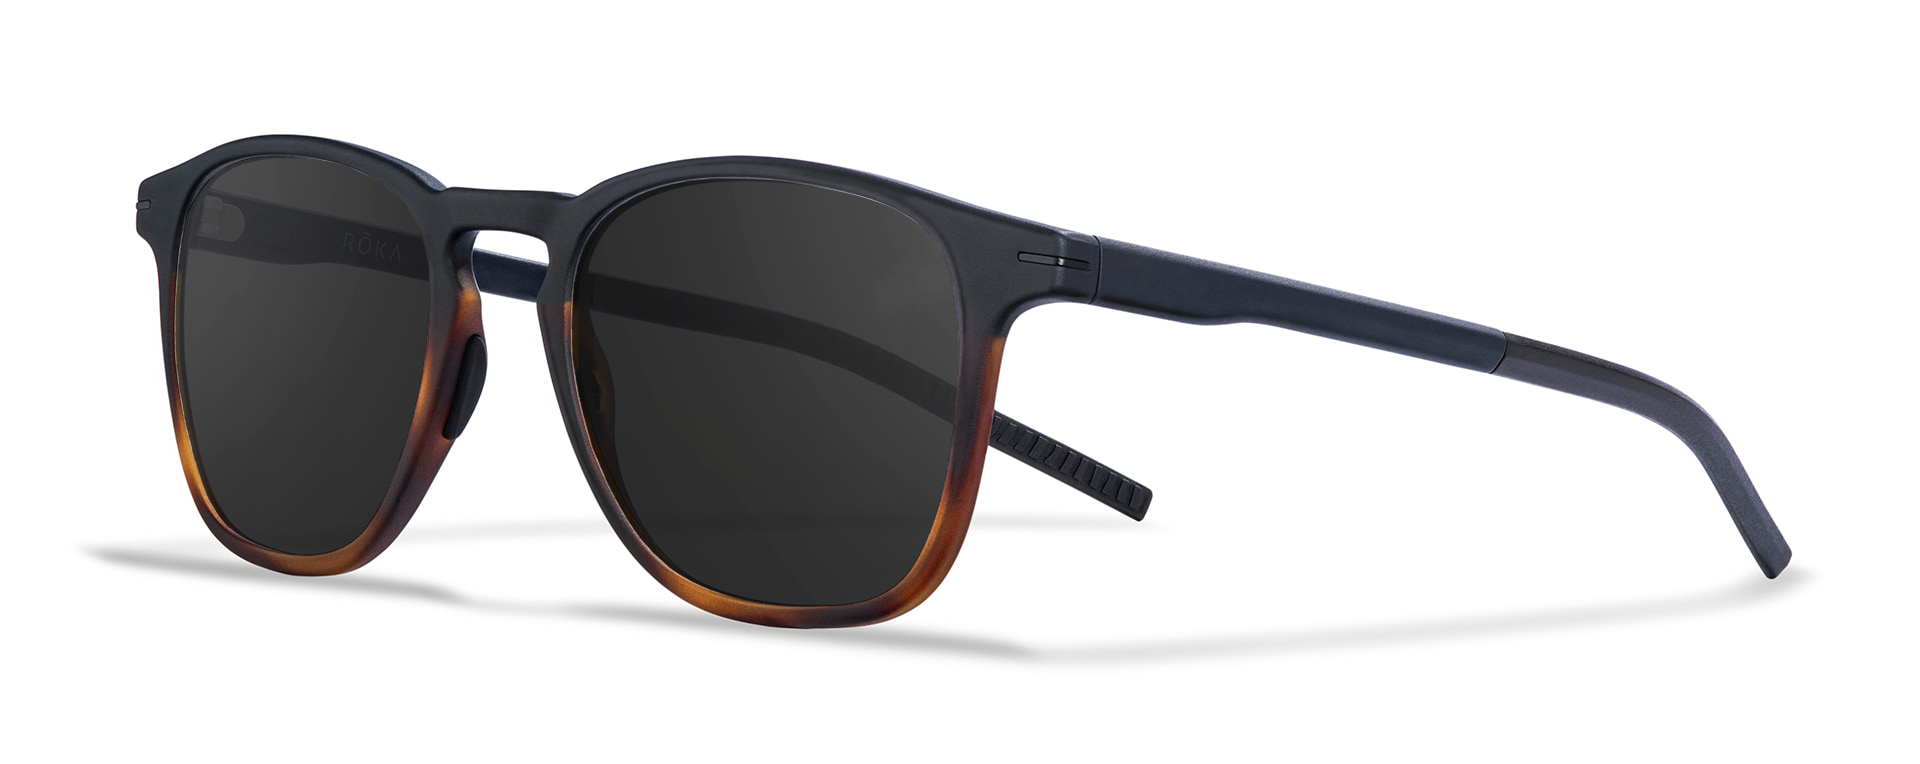 Three-quarter view of the Hunter tortoise fade frame with a dark carbon lens.